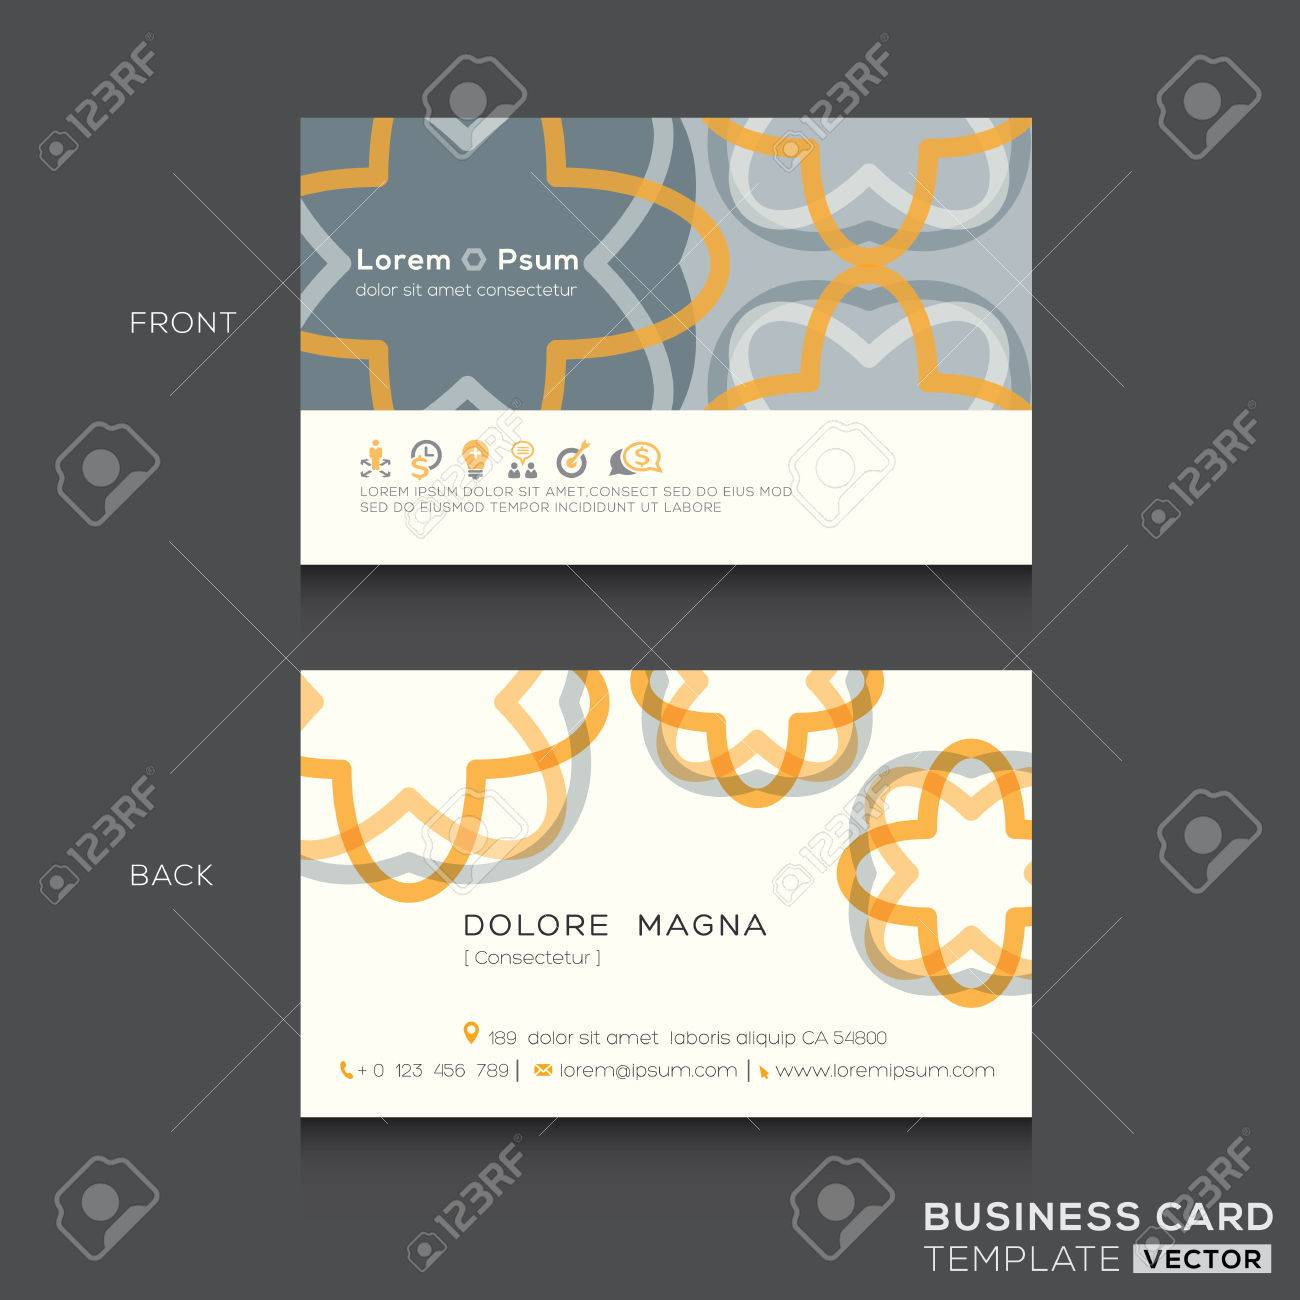 Retro business cards design template royalty free cliparts vectors retro business cards design template stock vector 41024881 wajeb